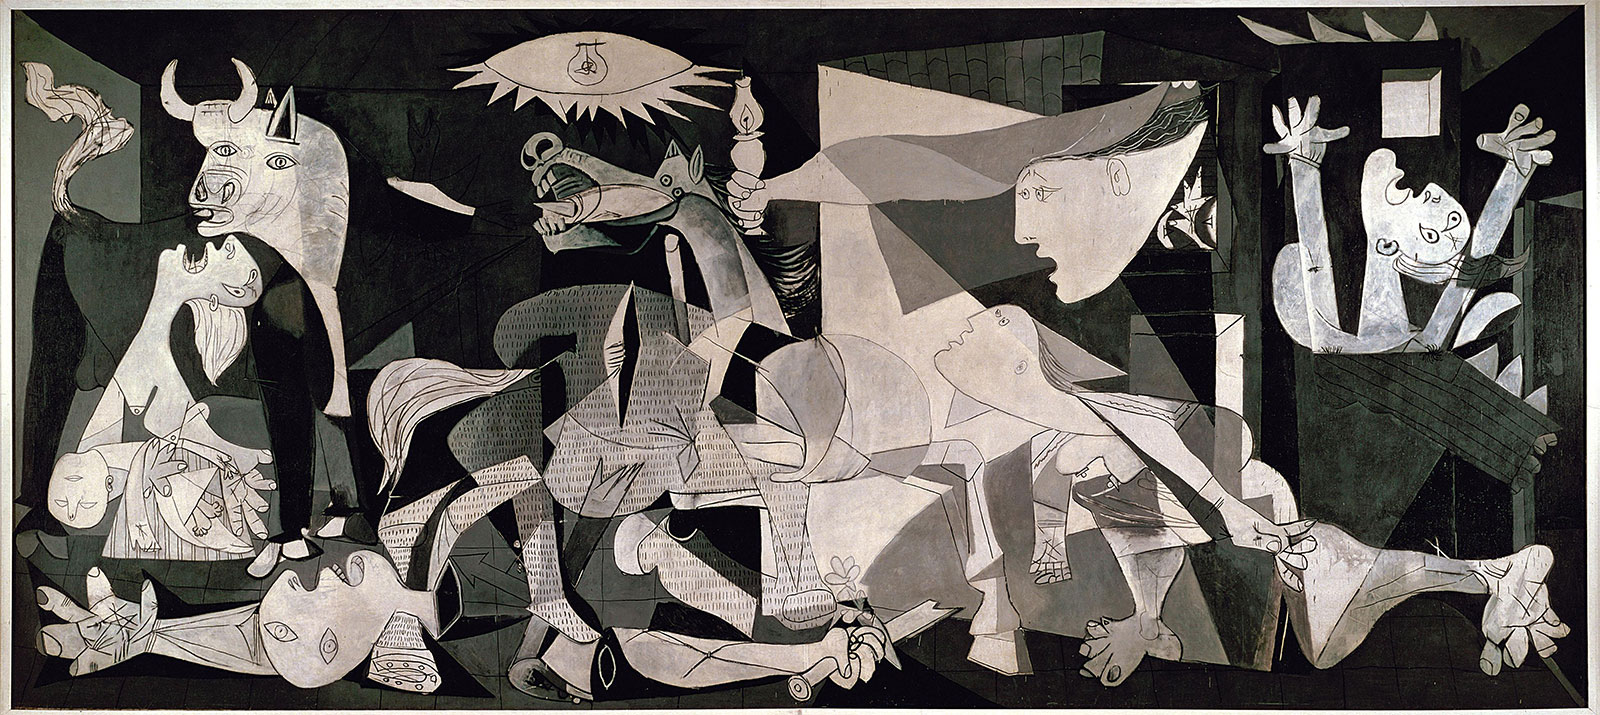 Guernica-canvas-Pablo-Picasso-Madrid-Museo-Nacional-1937.jpg